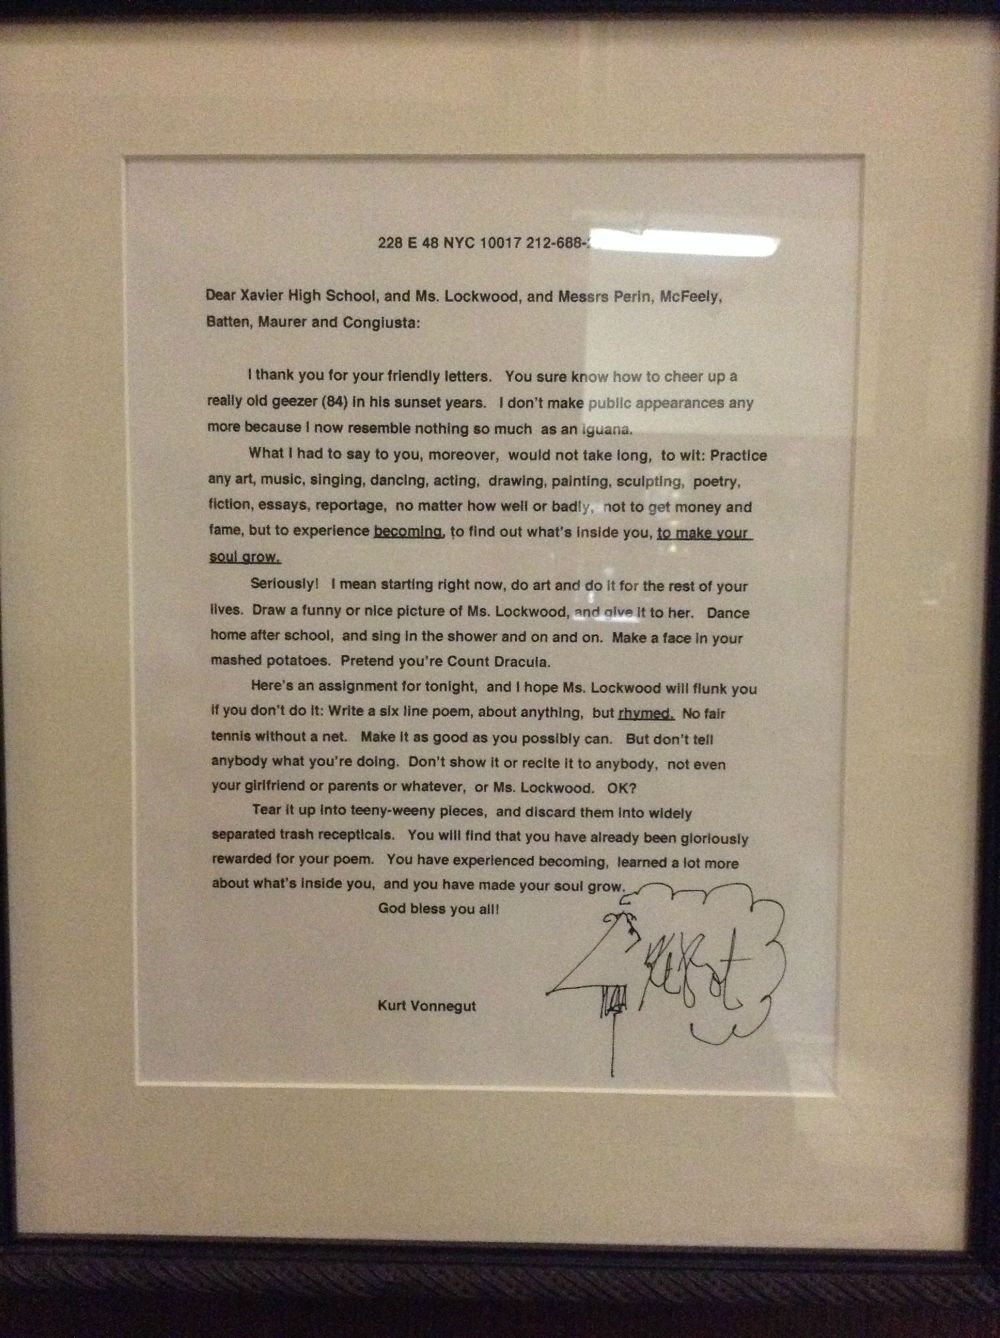 Students Asked Their Favorite Authors to Visit. Kurt Vonnegut was the Only one who Responded